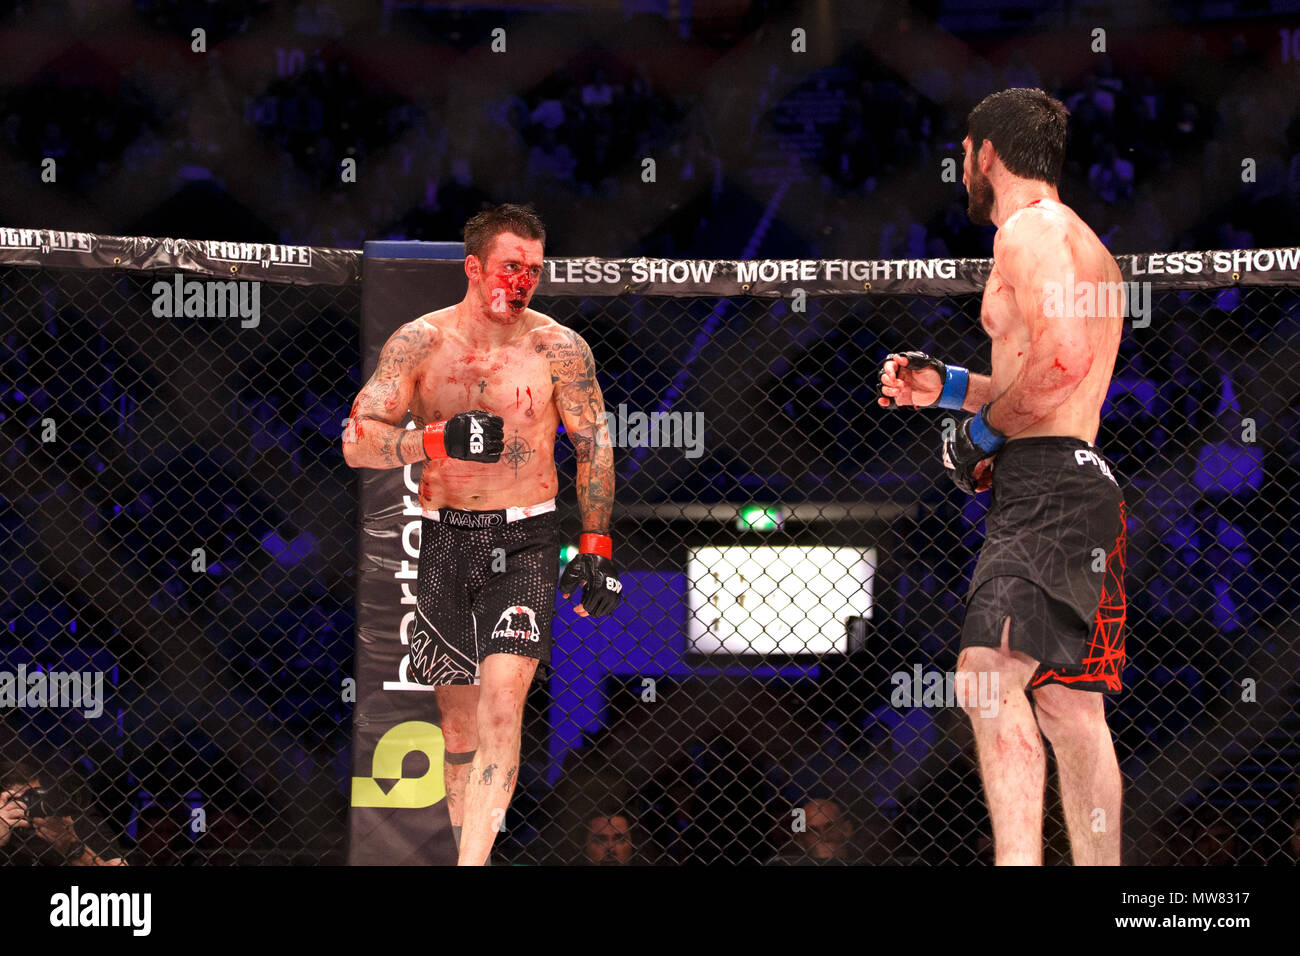 A bloodied Adam Zając (left) fights Abdul-Rakhman Dzhanaev during the second round of their middleweight encounter at ACB 54 in Manchester, UK. Zając would eventually lose due to a doctor's stoppage. Absolute Championship Berkut, Mixed Martial Arts, MMA fight. - Stock Image